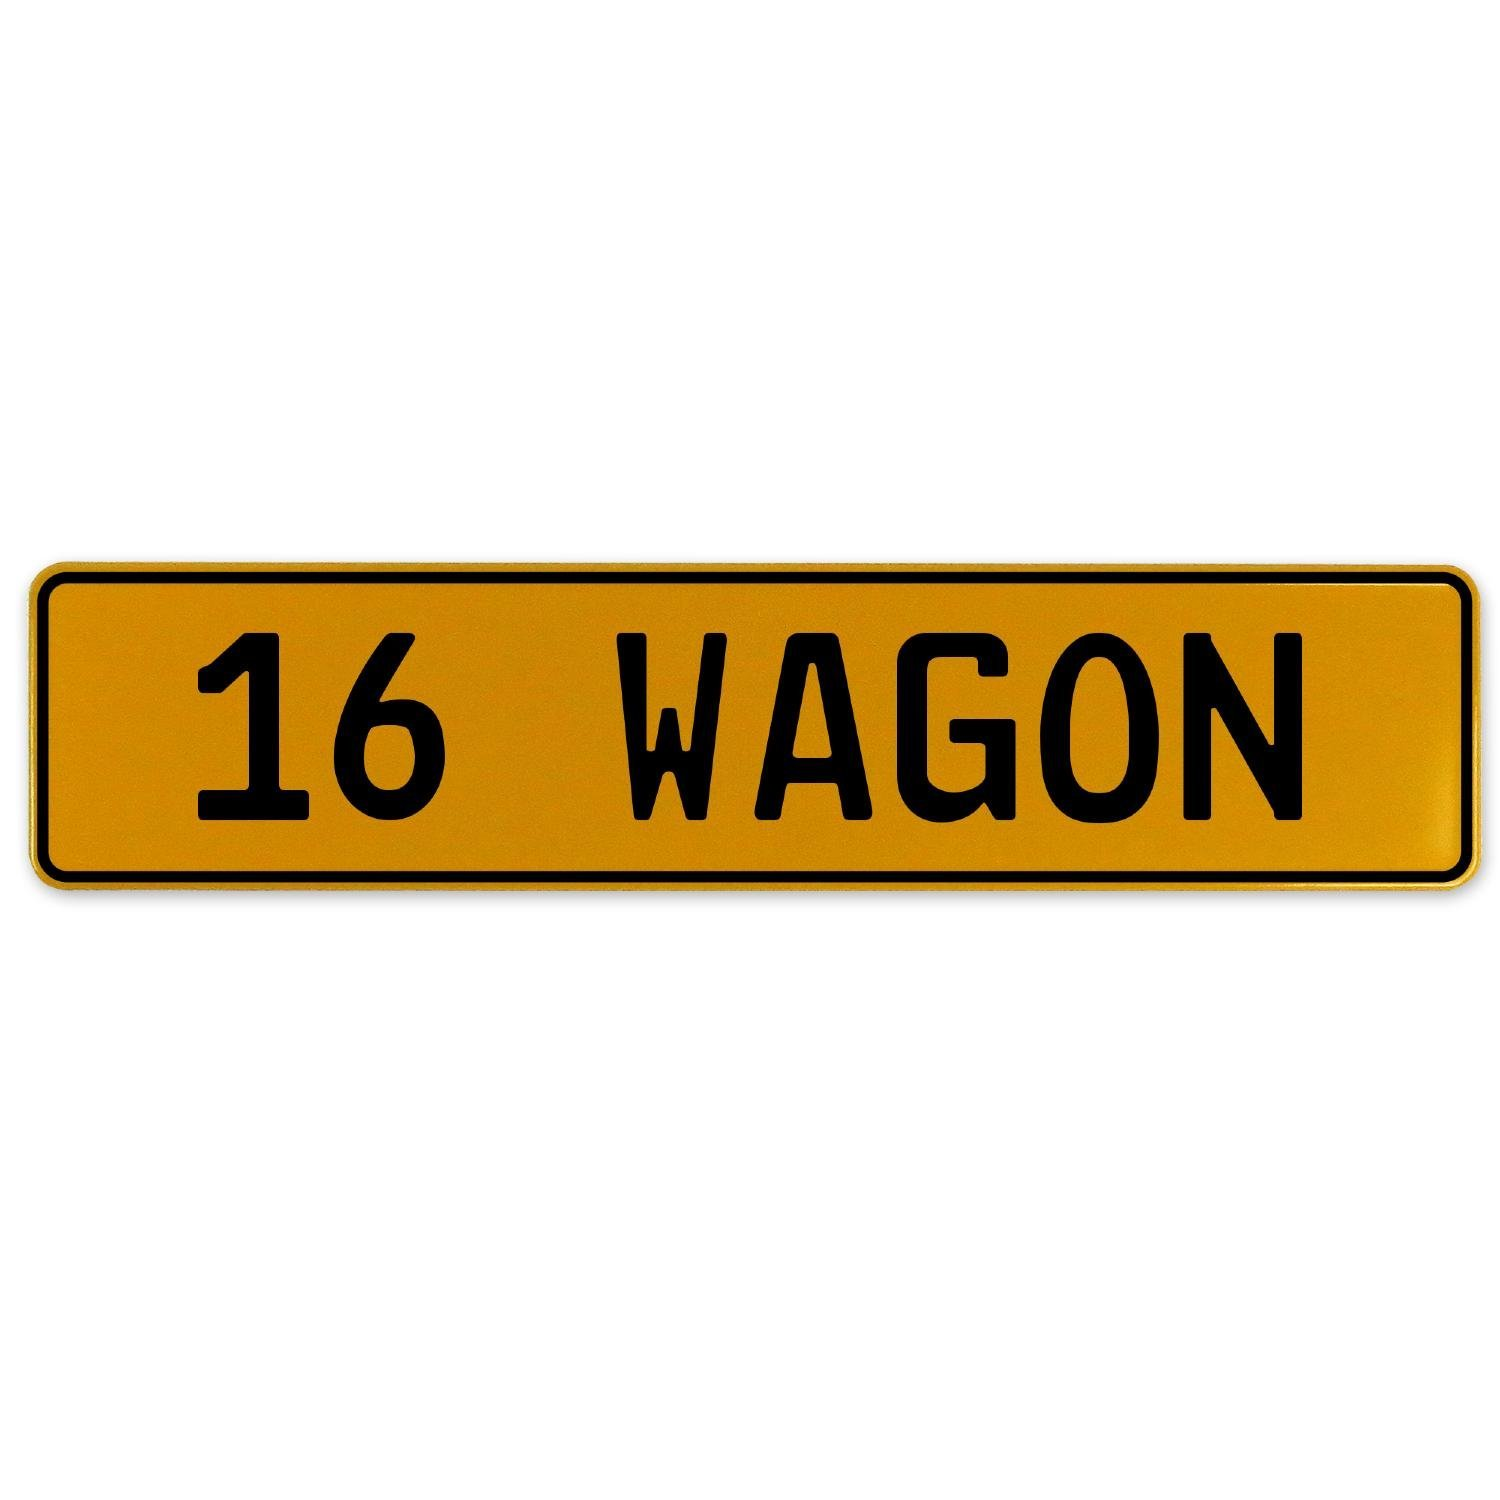 Vintage Parts 563227 16 Wagon Yellow Stamped Aluminum European Plate